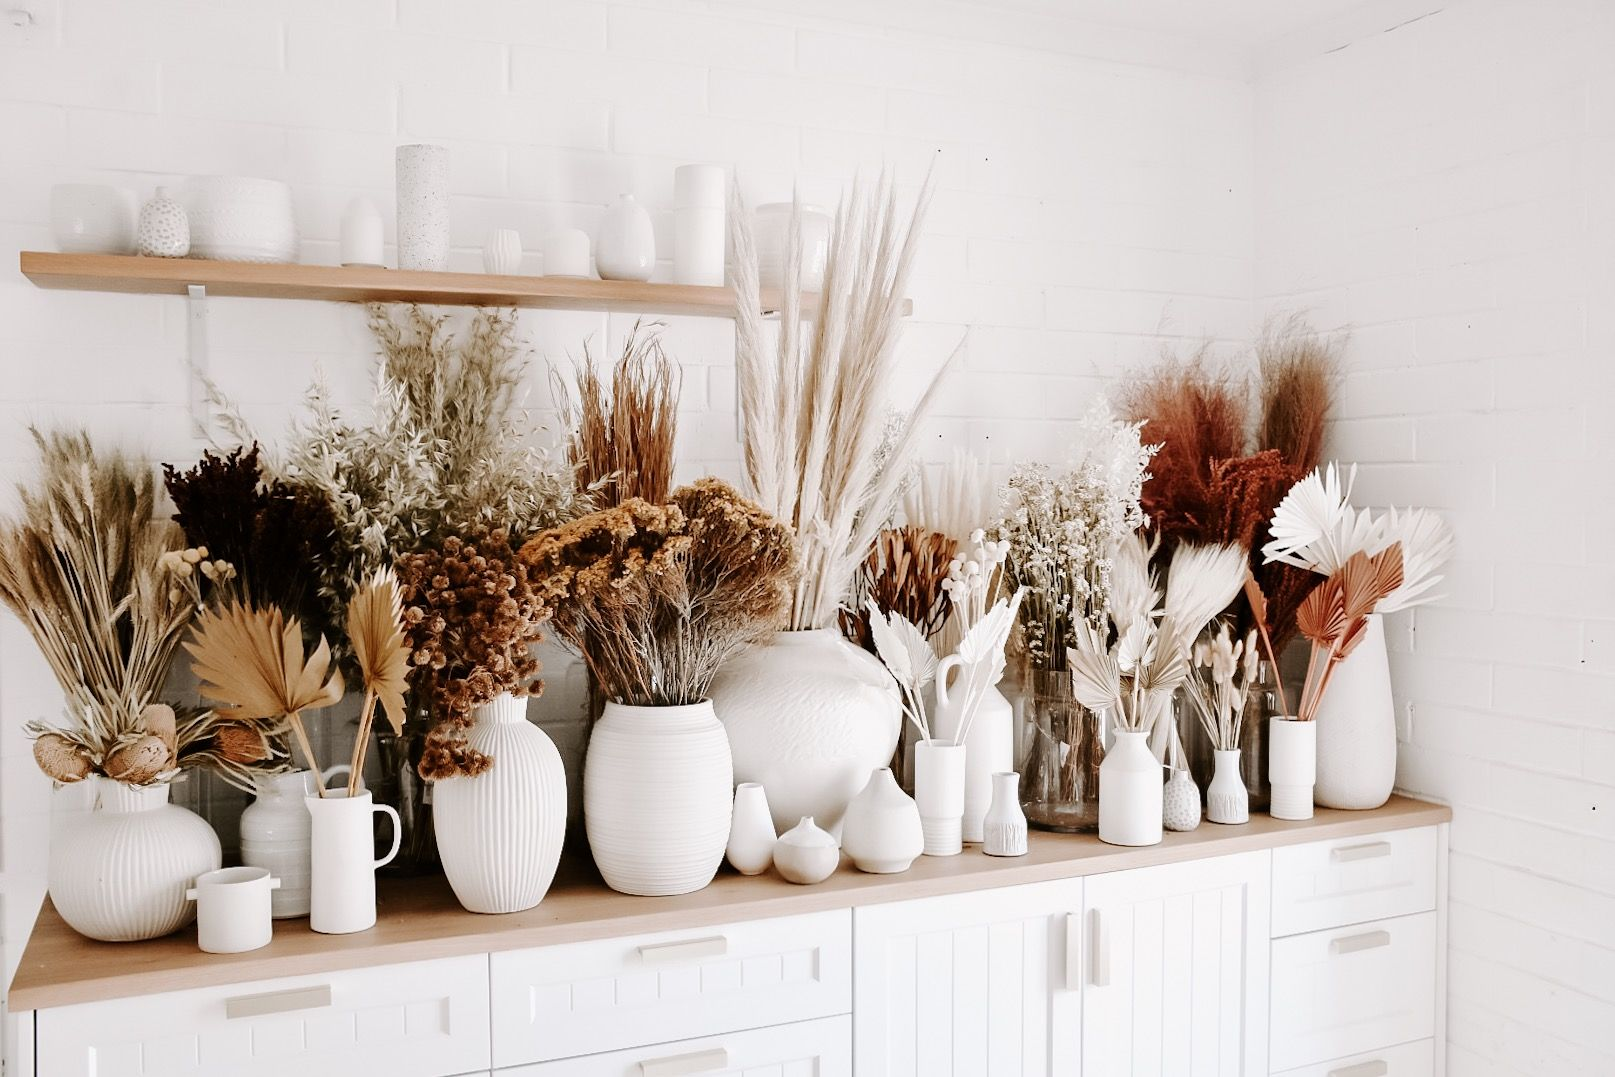 How Long Do Dried Flowers Last Sunshine Coast Dried Flower Bar Dried Flower Arrangements Bud Vases Arrangements Flower Bar